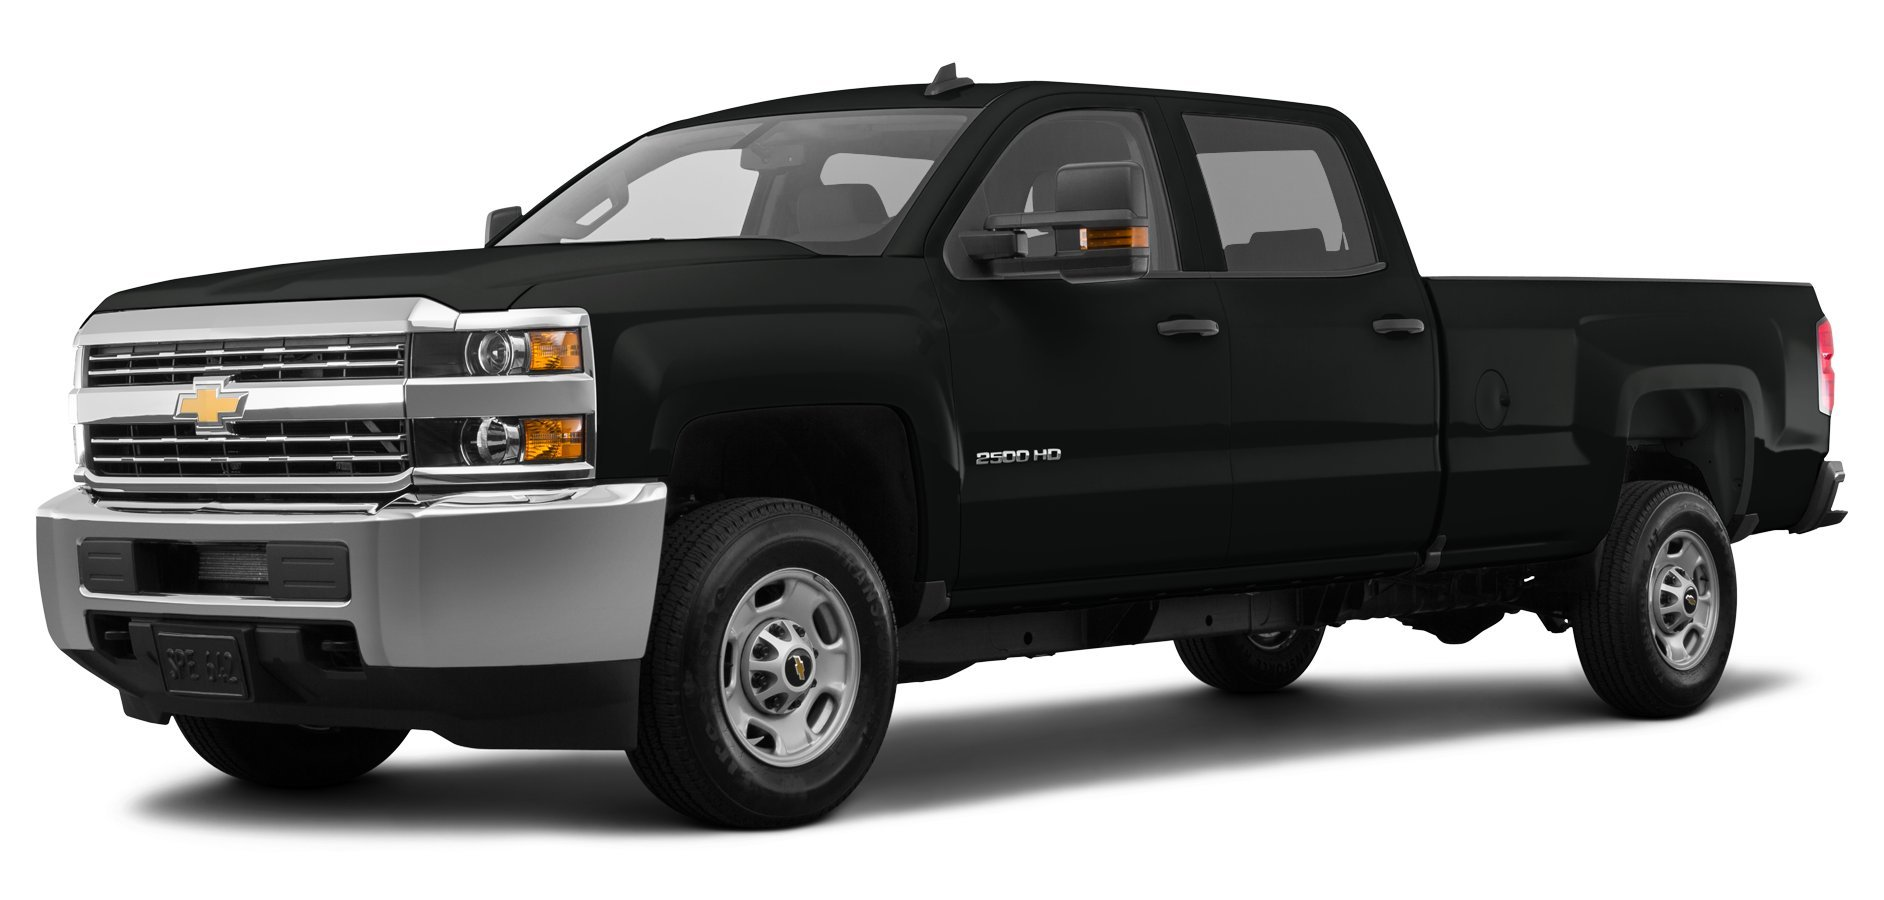 2016 chevy silverado 2500hd gallery diagram writing sample ideas and guide. Black Bedroom Furniture Sets. Home Design Ideas